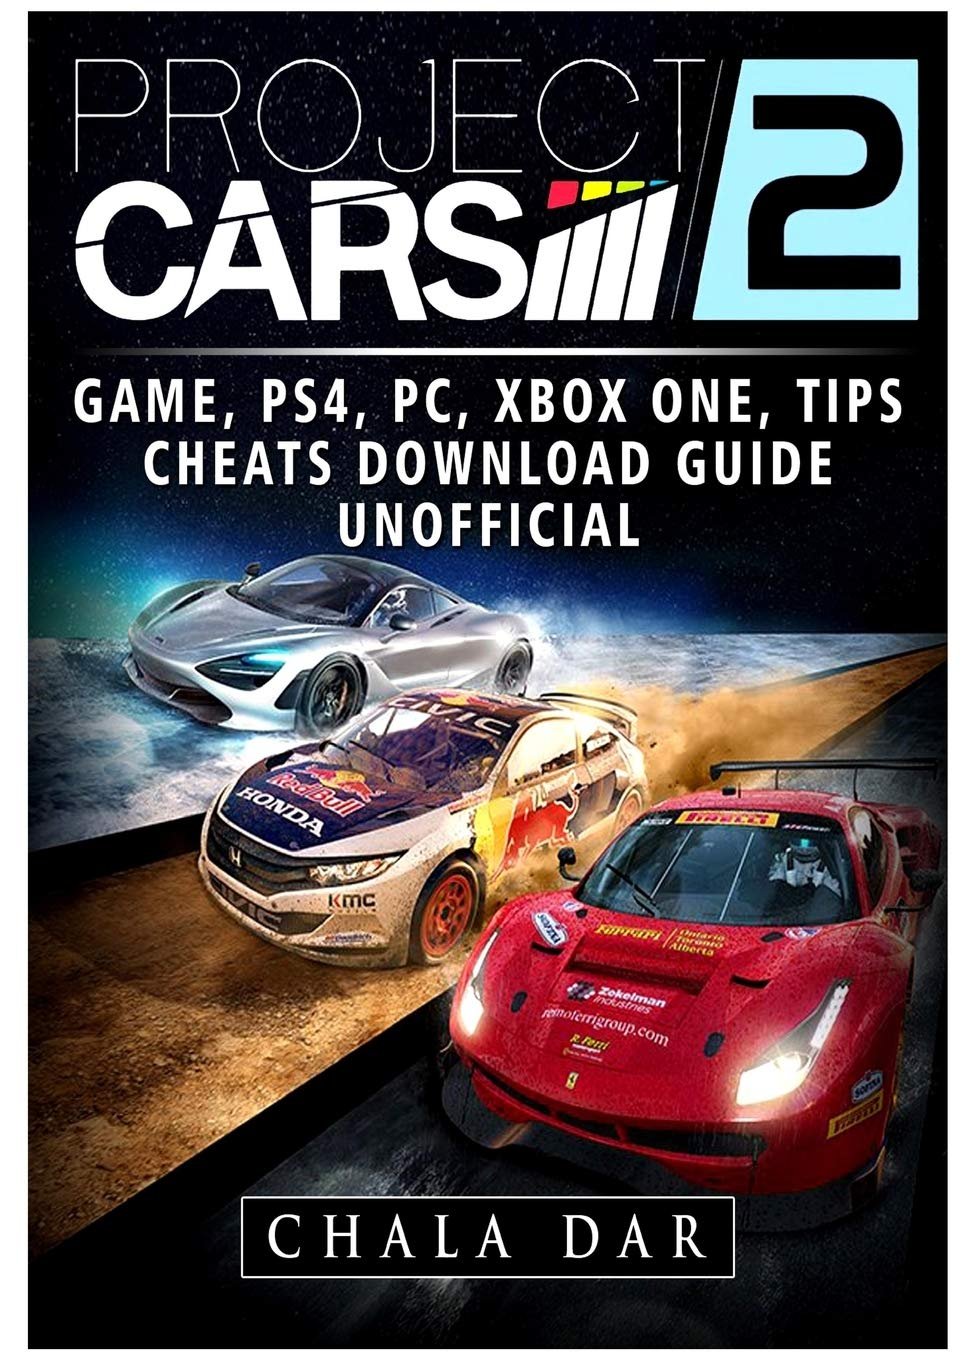 Project Cars 2 Game, PS4, PC, Xbox One, Tips, Cheats, Download ...